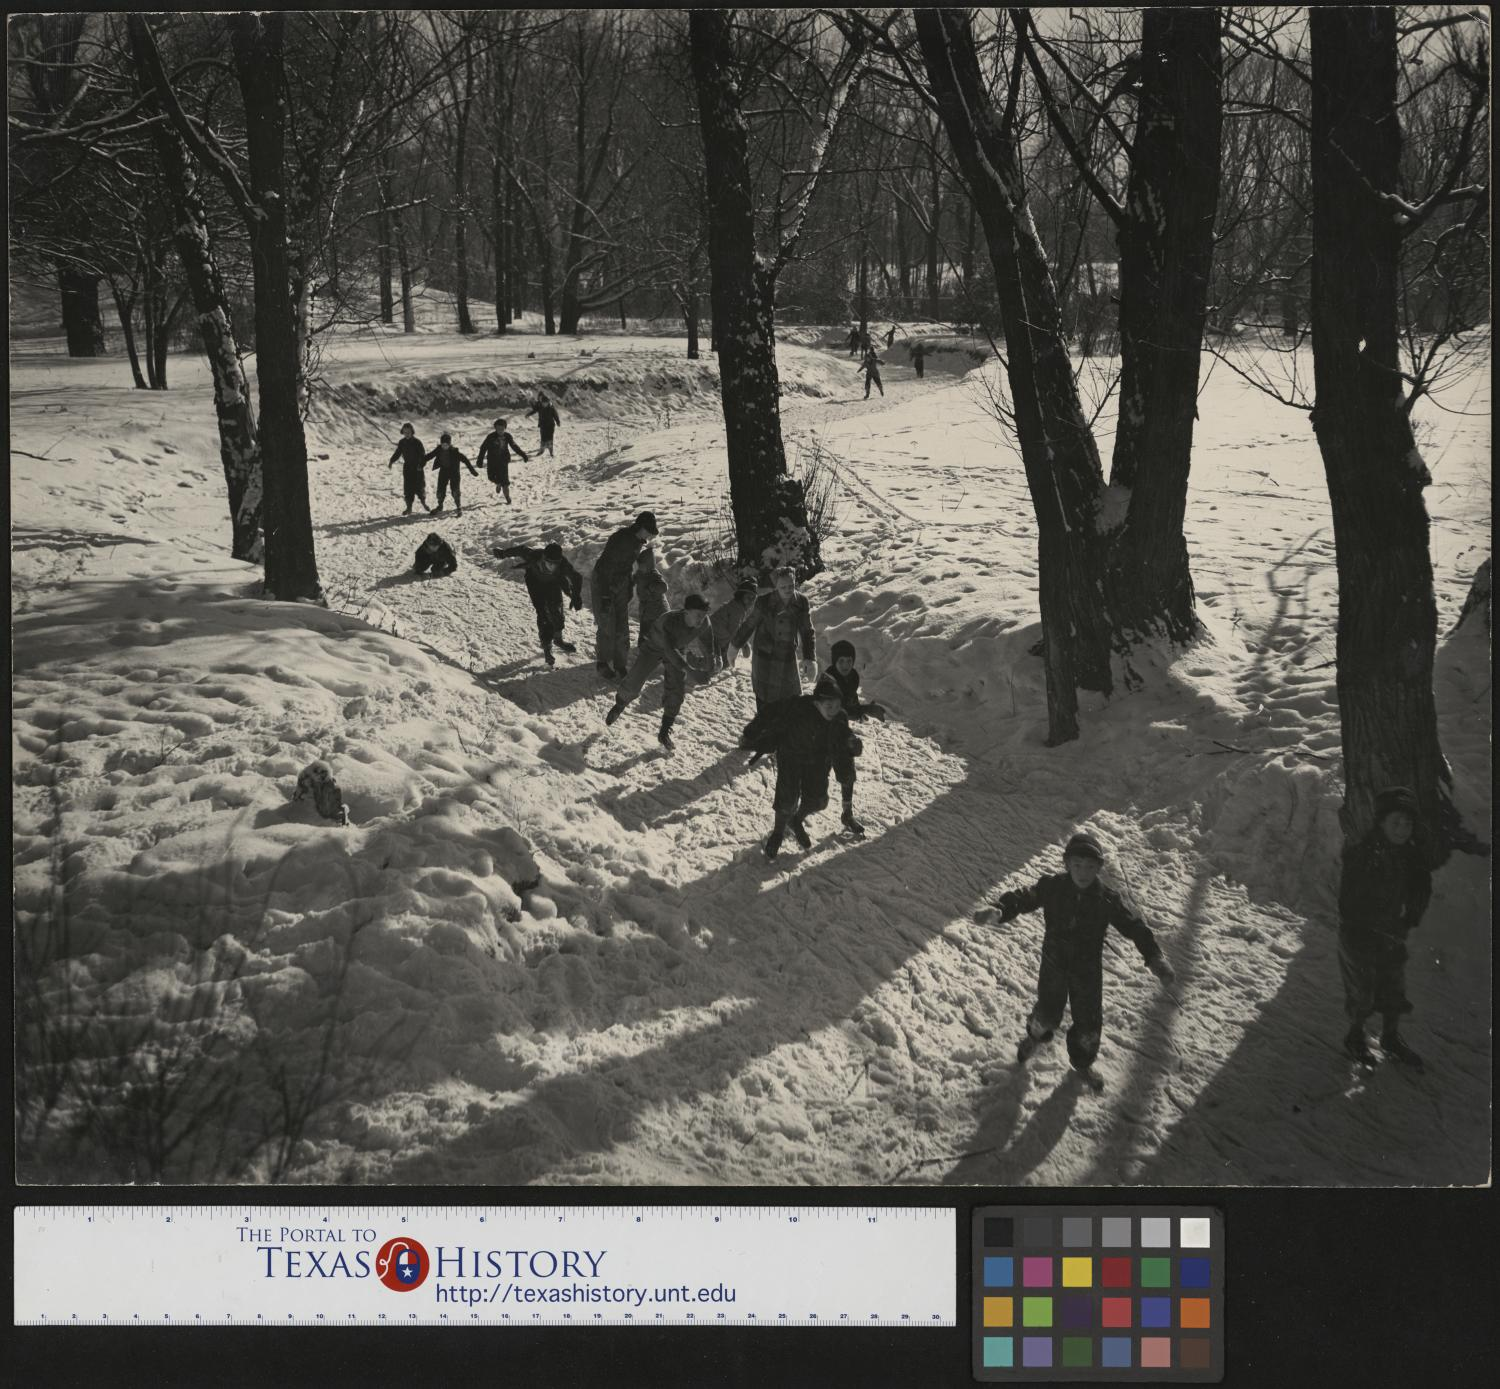 [Skating Down a Creek], Photograph of people, mostly children, ice skating down a frozen creek. In the image, the groups are trying to skate down the ice covered creek, some are falling or have fallen down.,